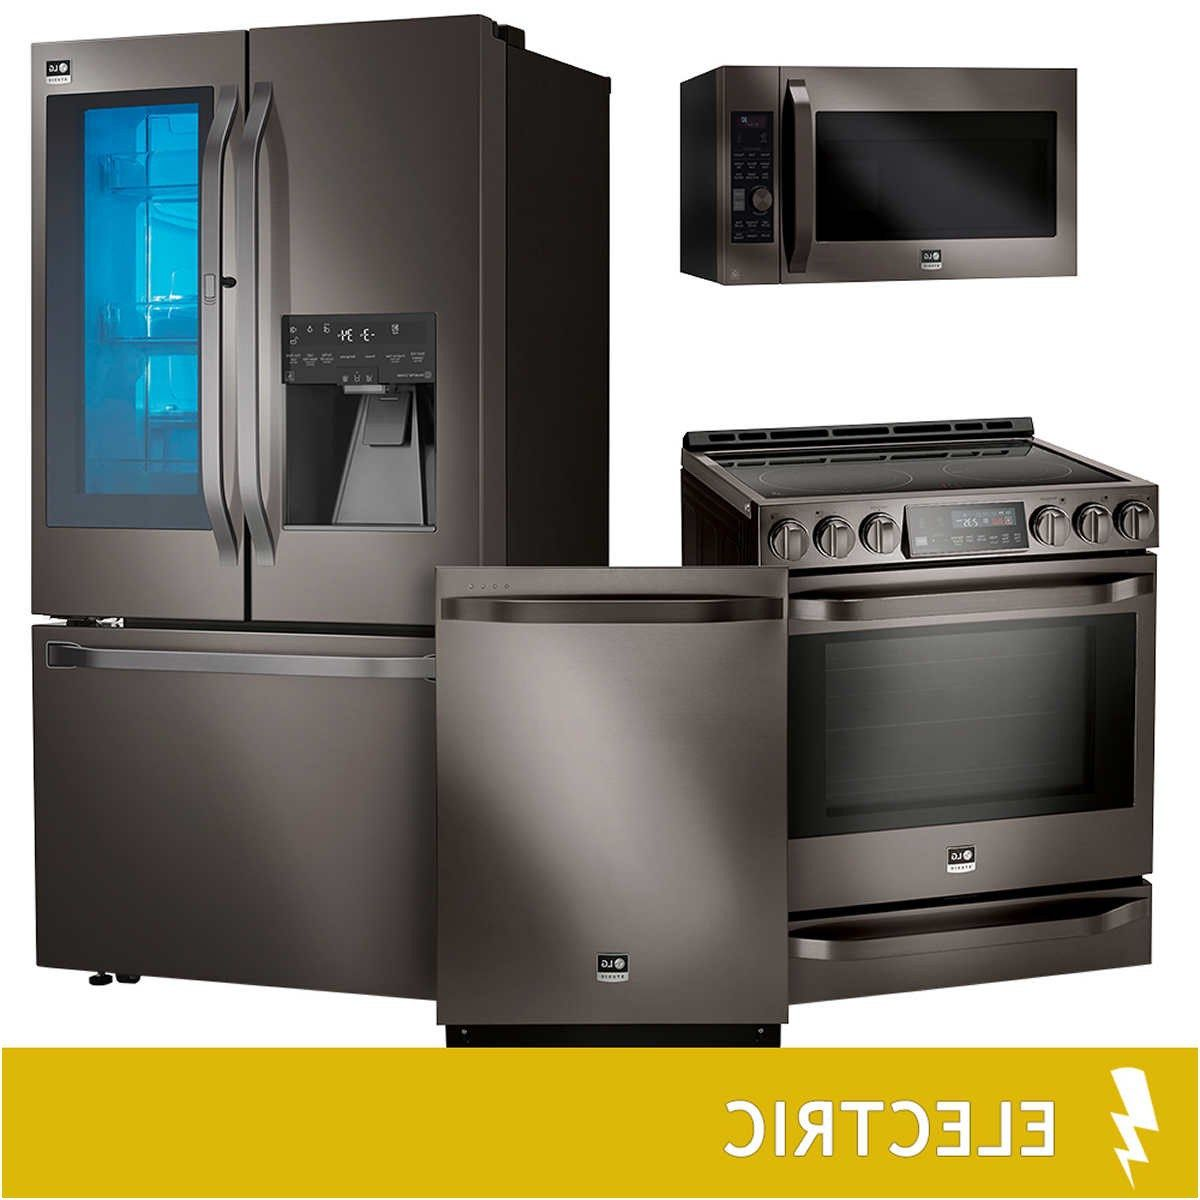 Kitchen Appliances Packages: Brandsmart Kitchen Appliance Packages